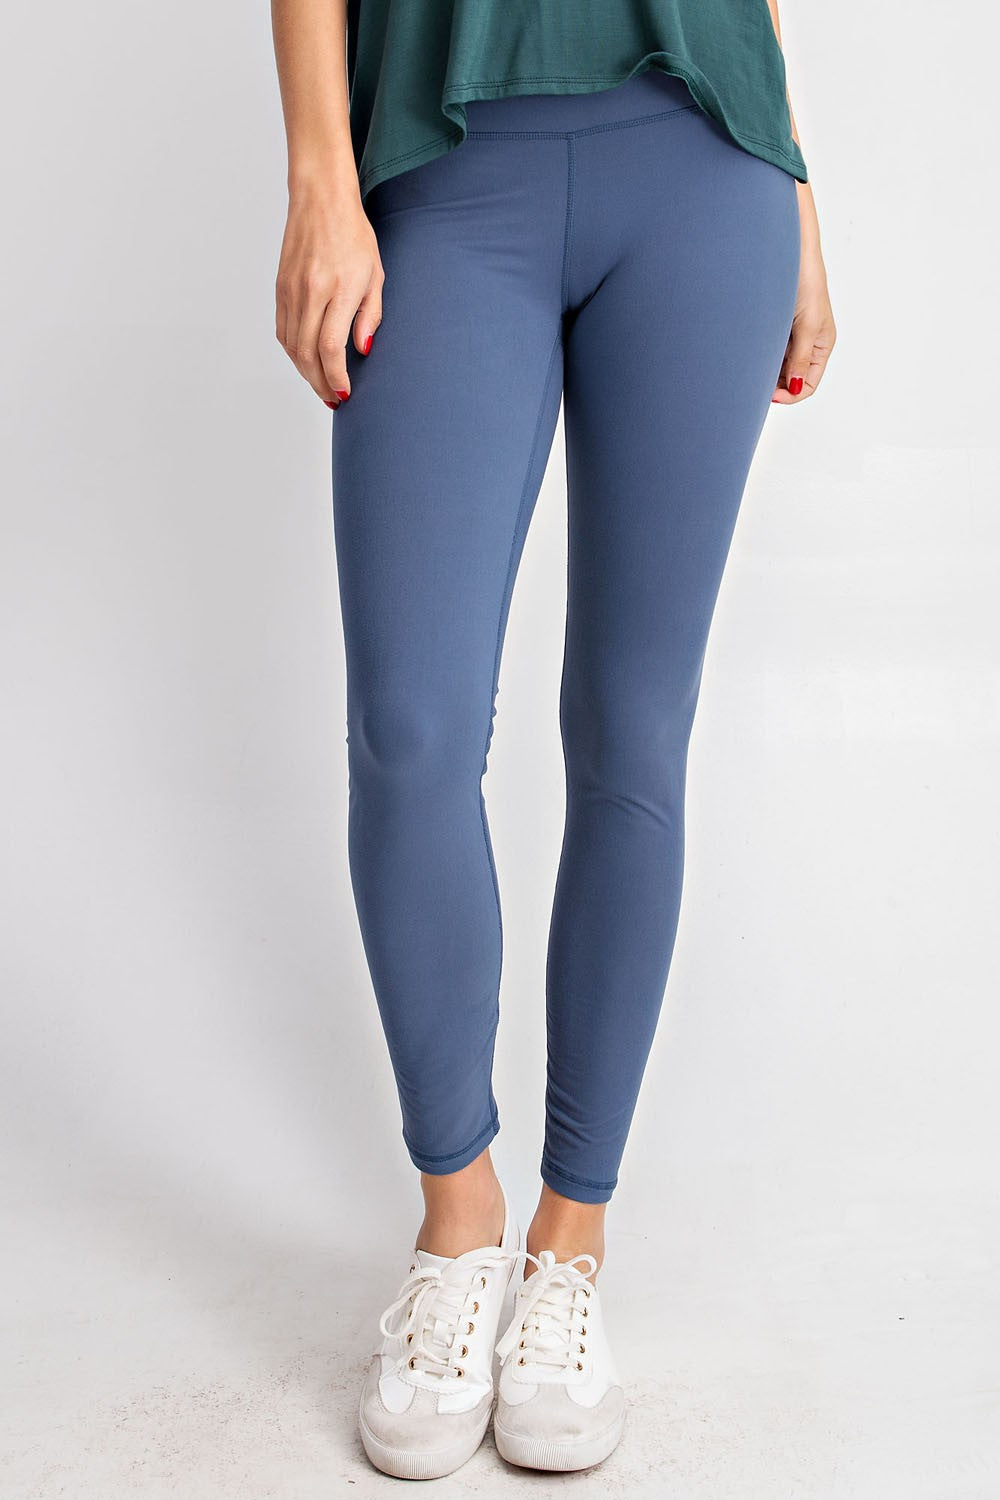 Code Blue Buttery Soft Leggings